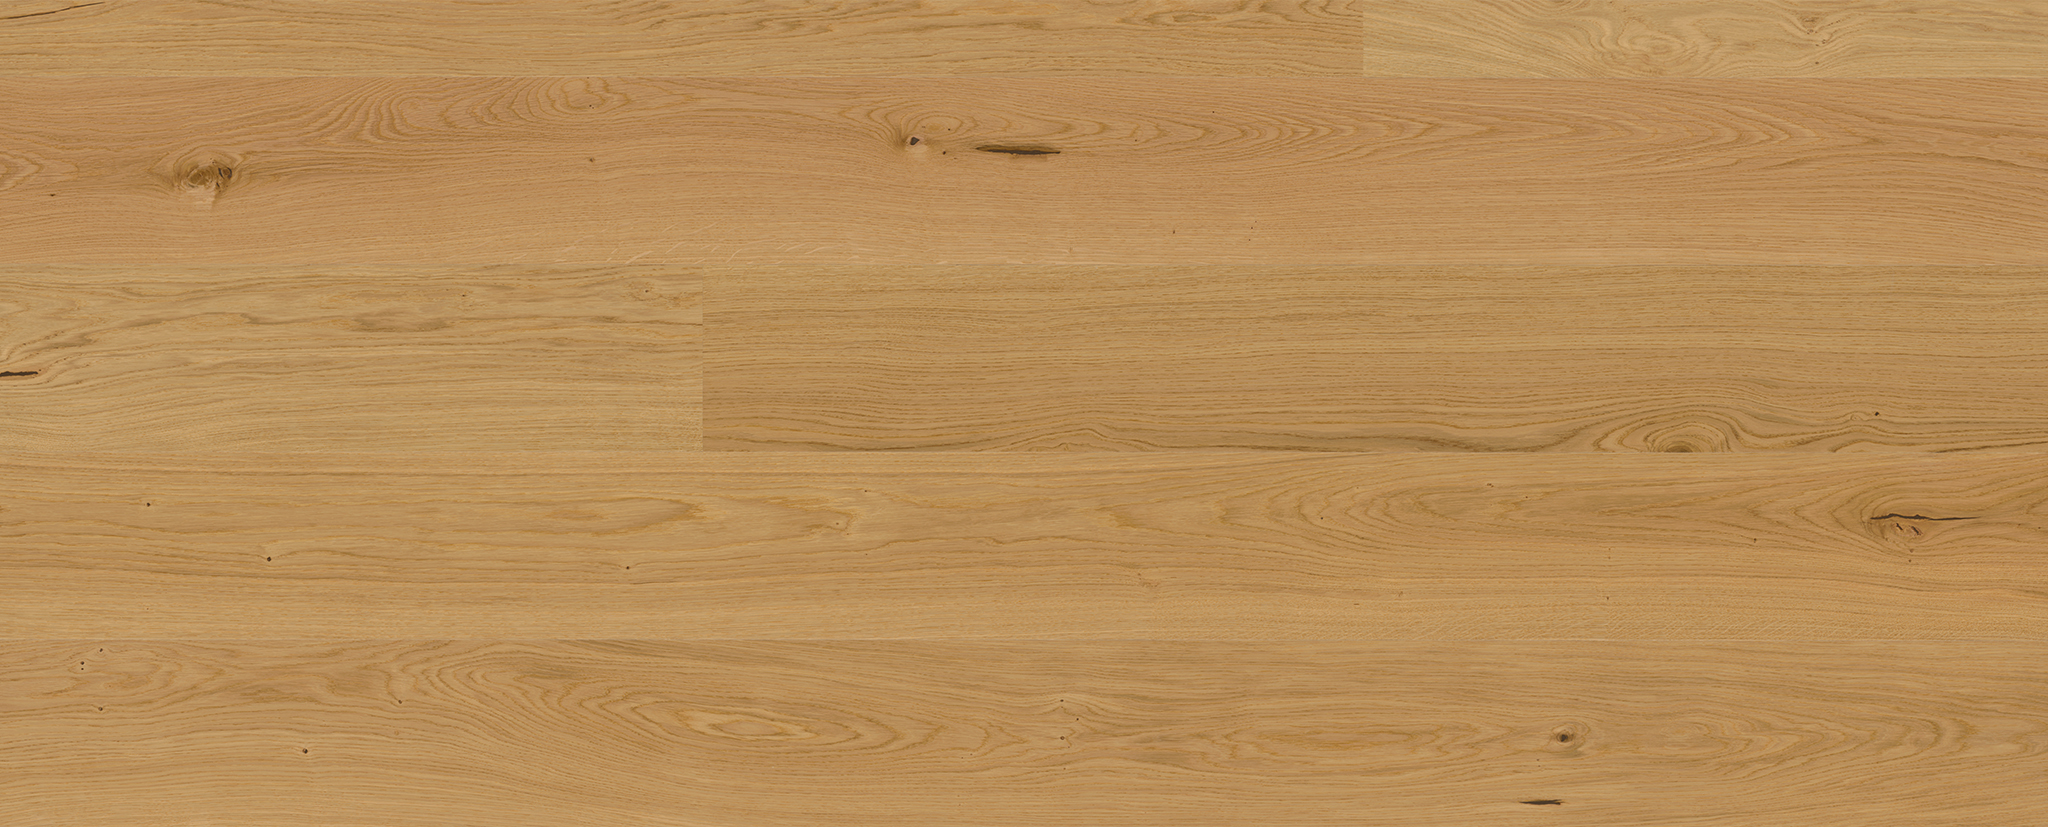 Engineered oak floor - Oak natural